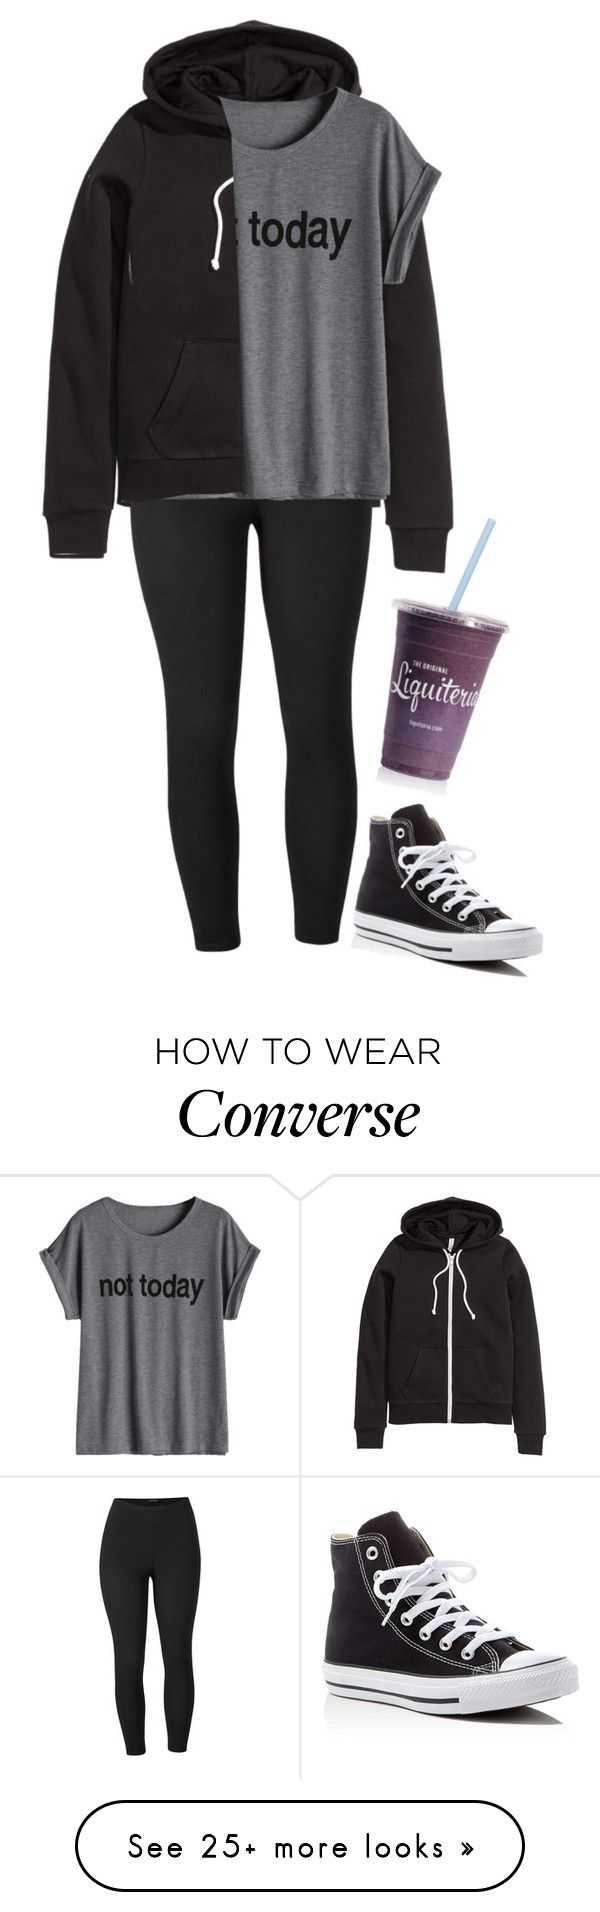 """not today"" by ryleerose1998 on Polyvore featuring H&M, Venus, Converse and plus size clothing"